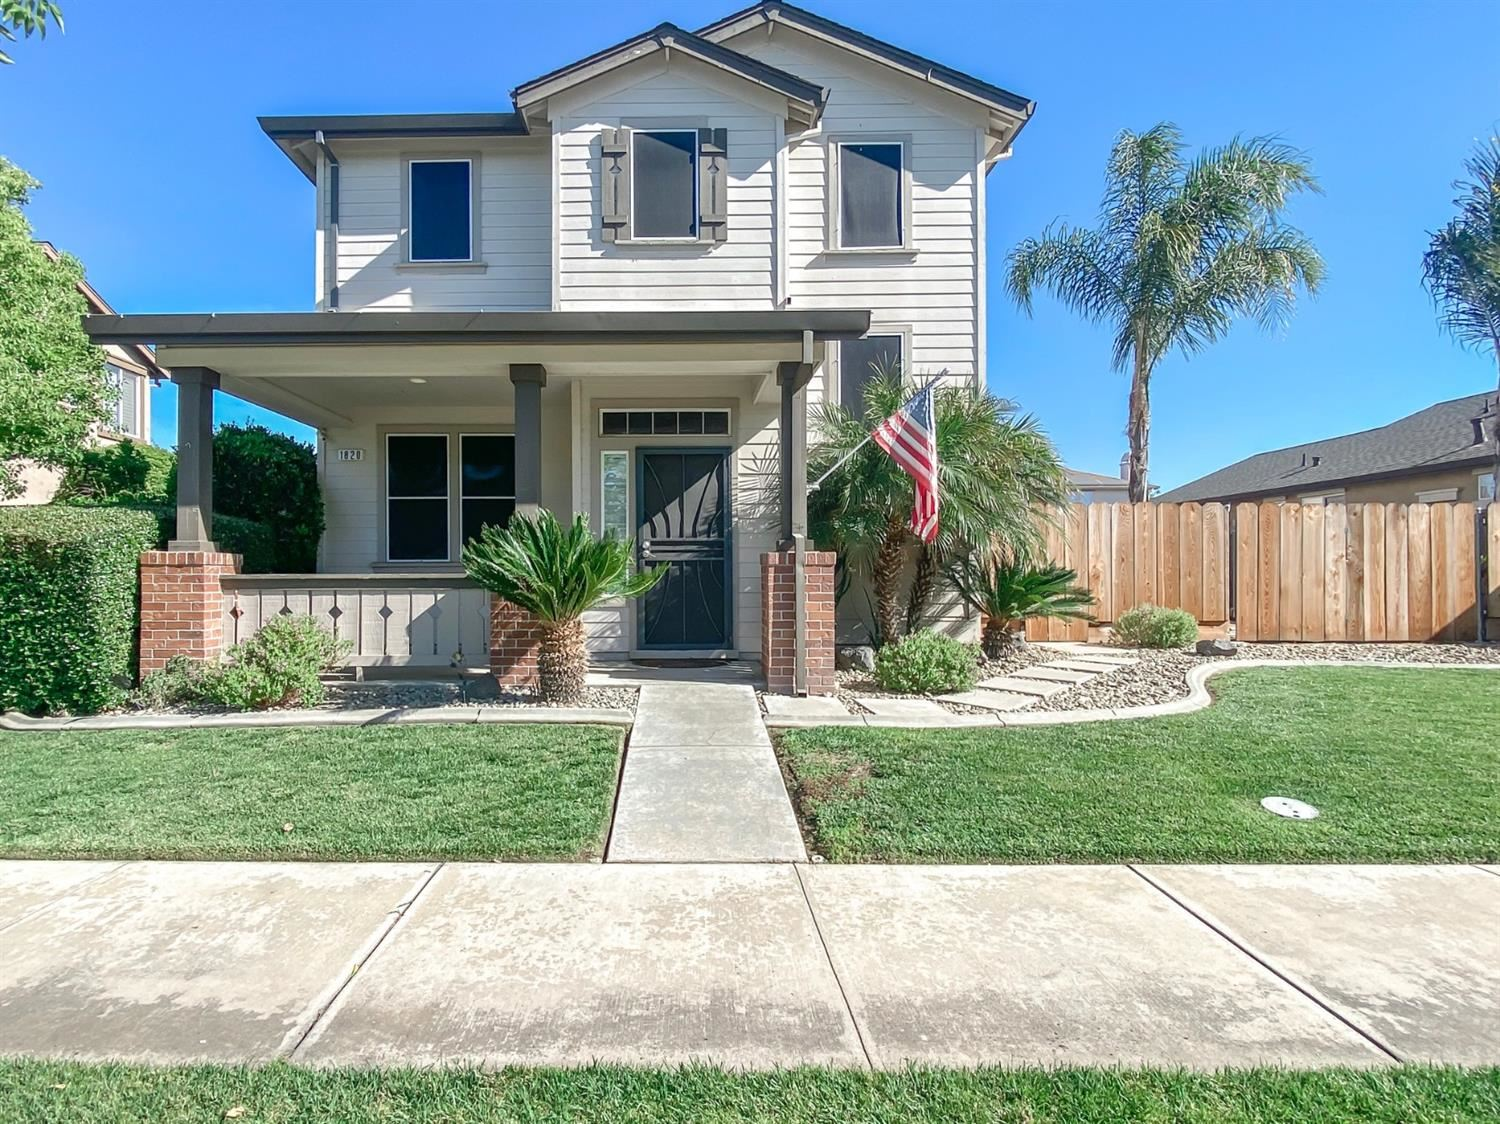 1820 Parkside Way, Oakdale, CA 95361 - MLS#: 221052844